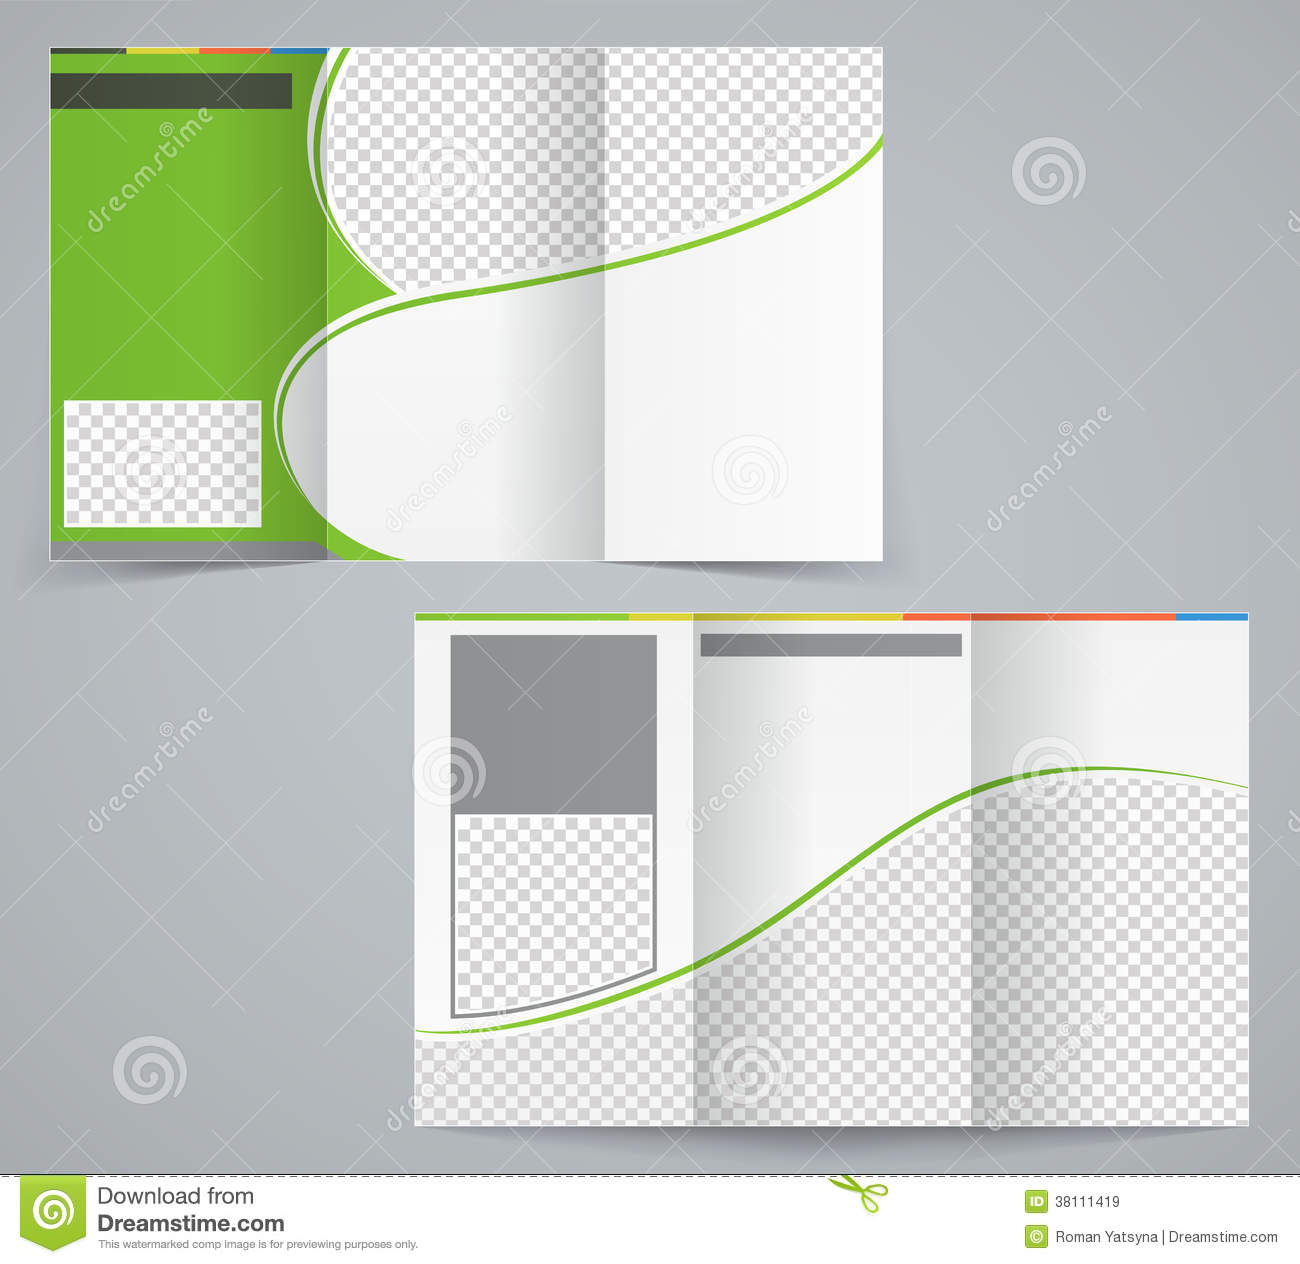 Tri fold business brochure template vector green royalty for Tri fold brochure templates free download